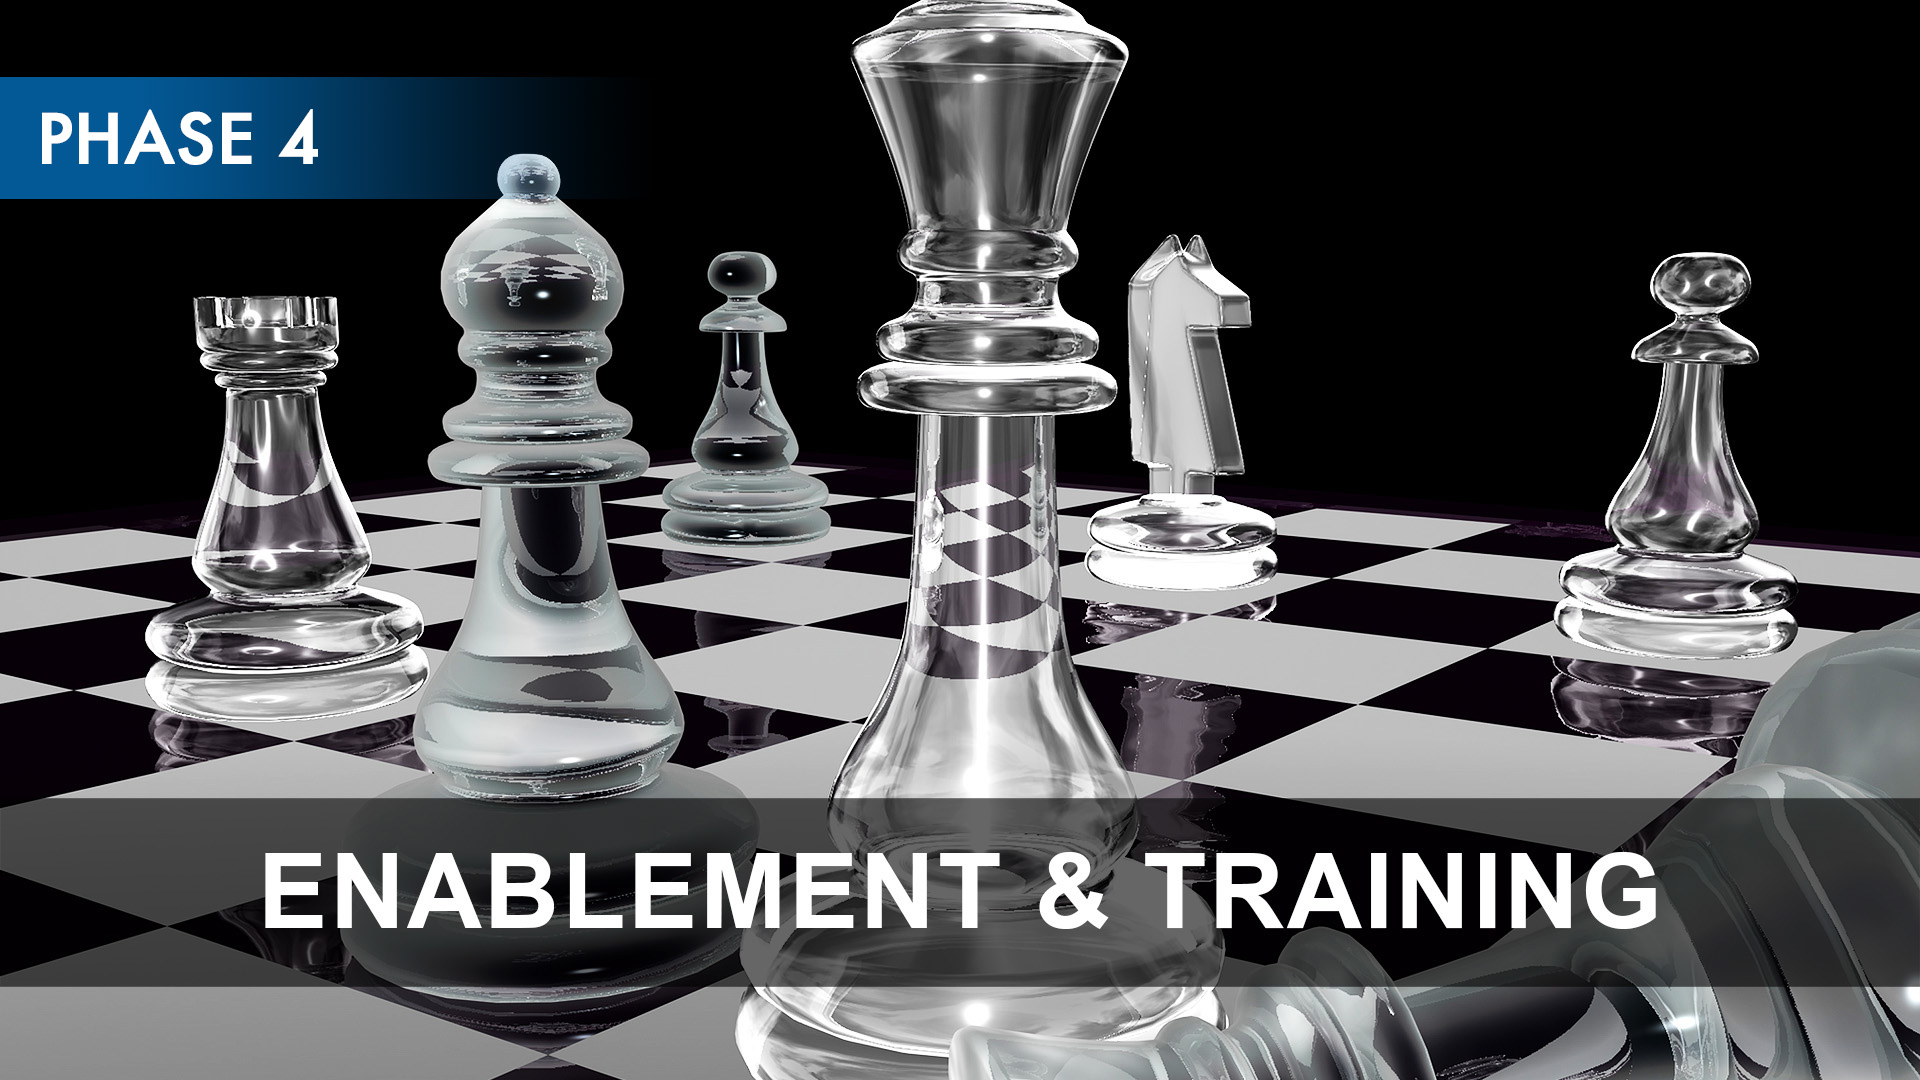 Phase 4 - Enablement and Training.jpg